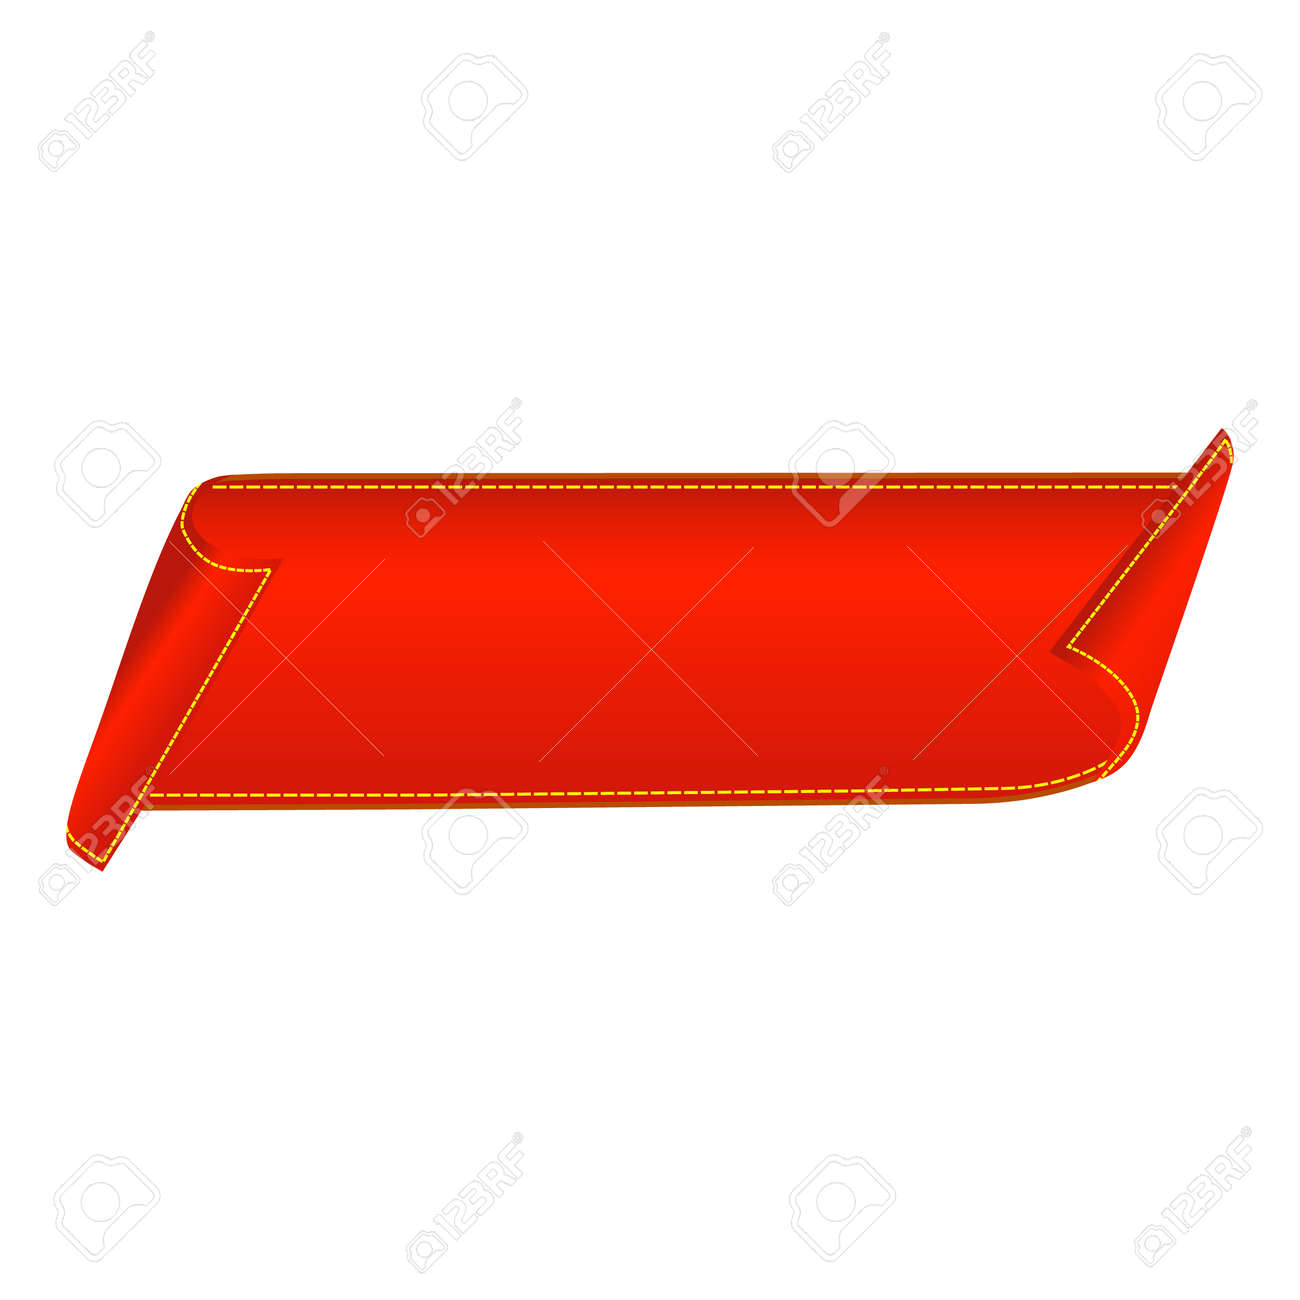 Sale banner. Red curved ribbon isolated on white background. Vector illustration - 145370955